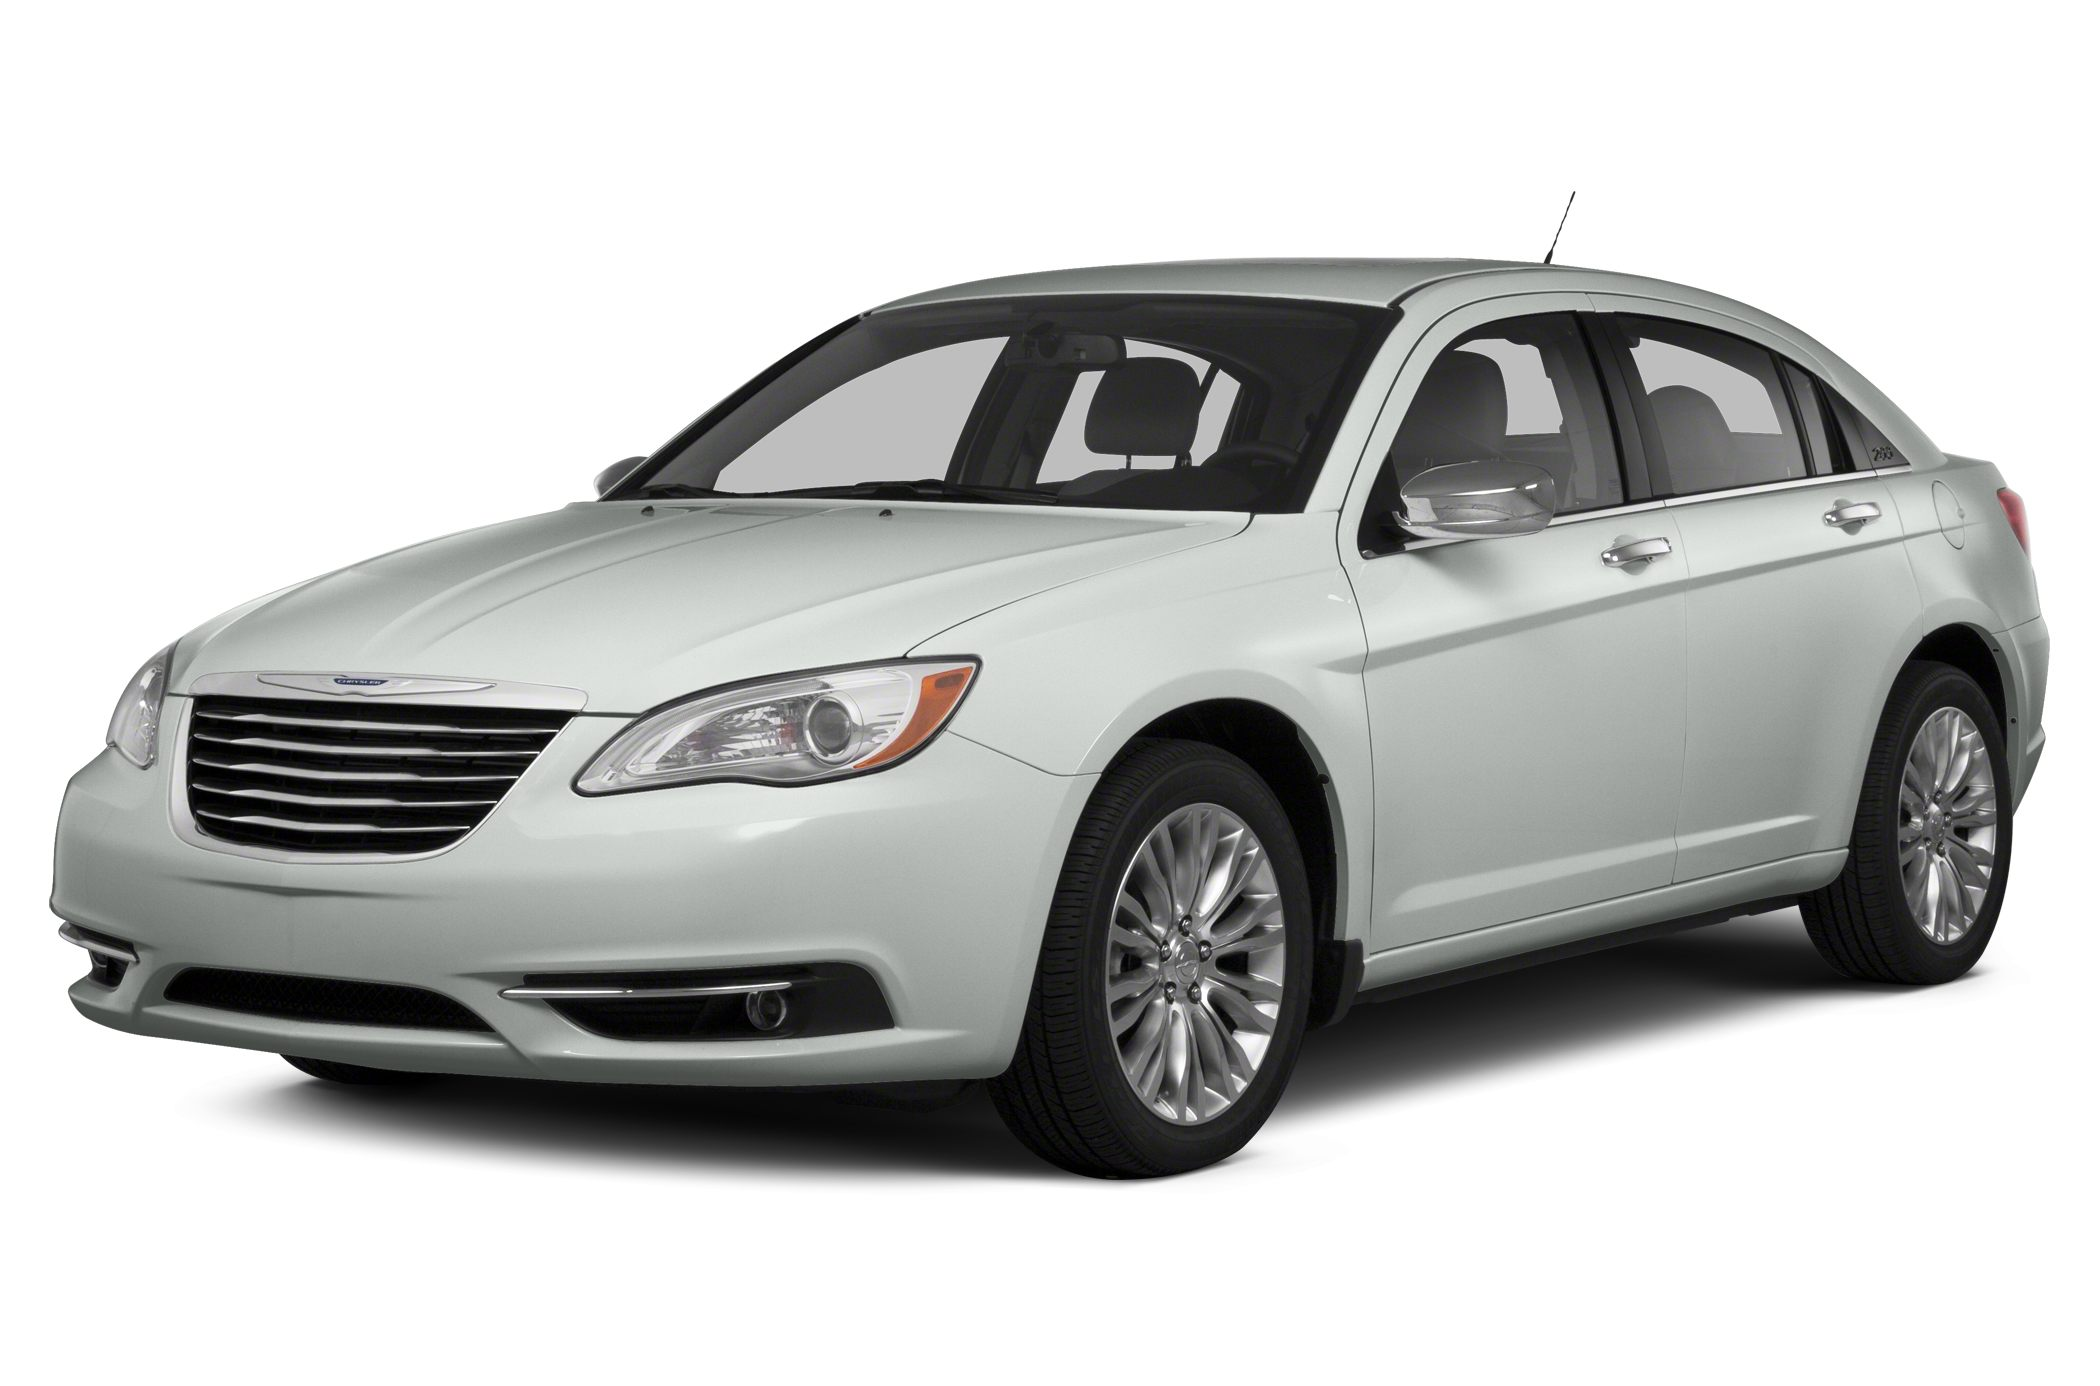 2014 Chrysler 200 LX Sedan for sale in Lafayette for $15,995 with 29,476 miles